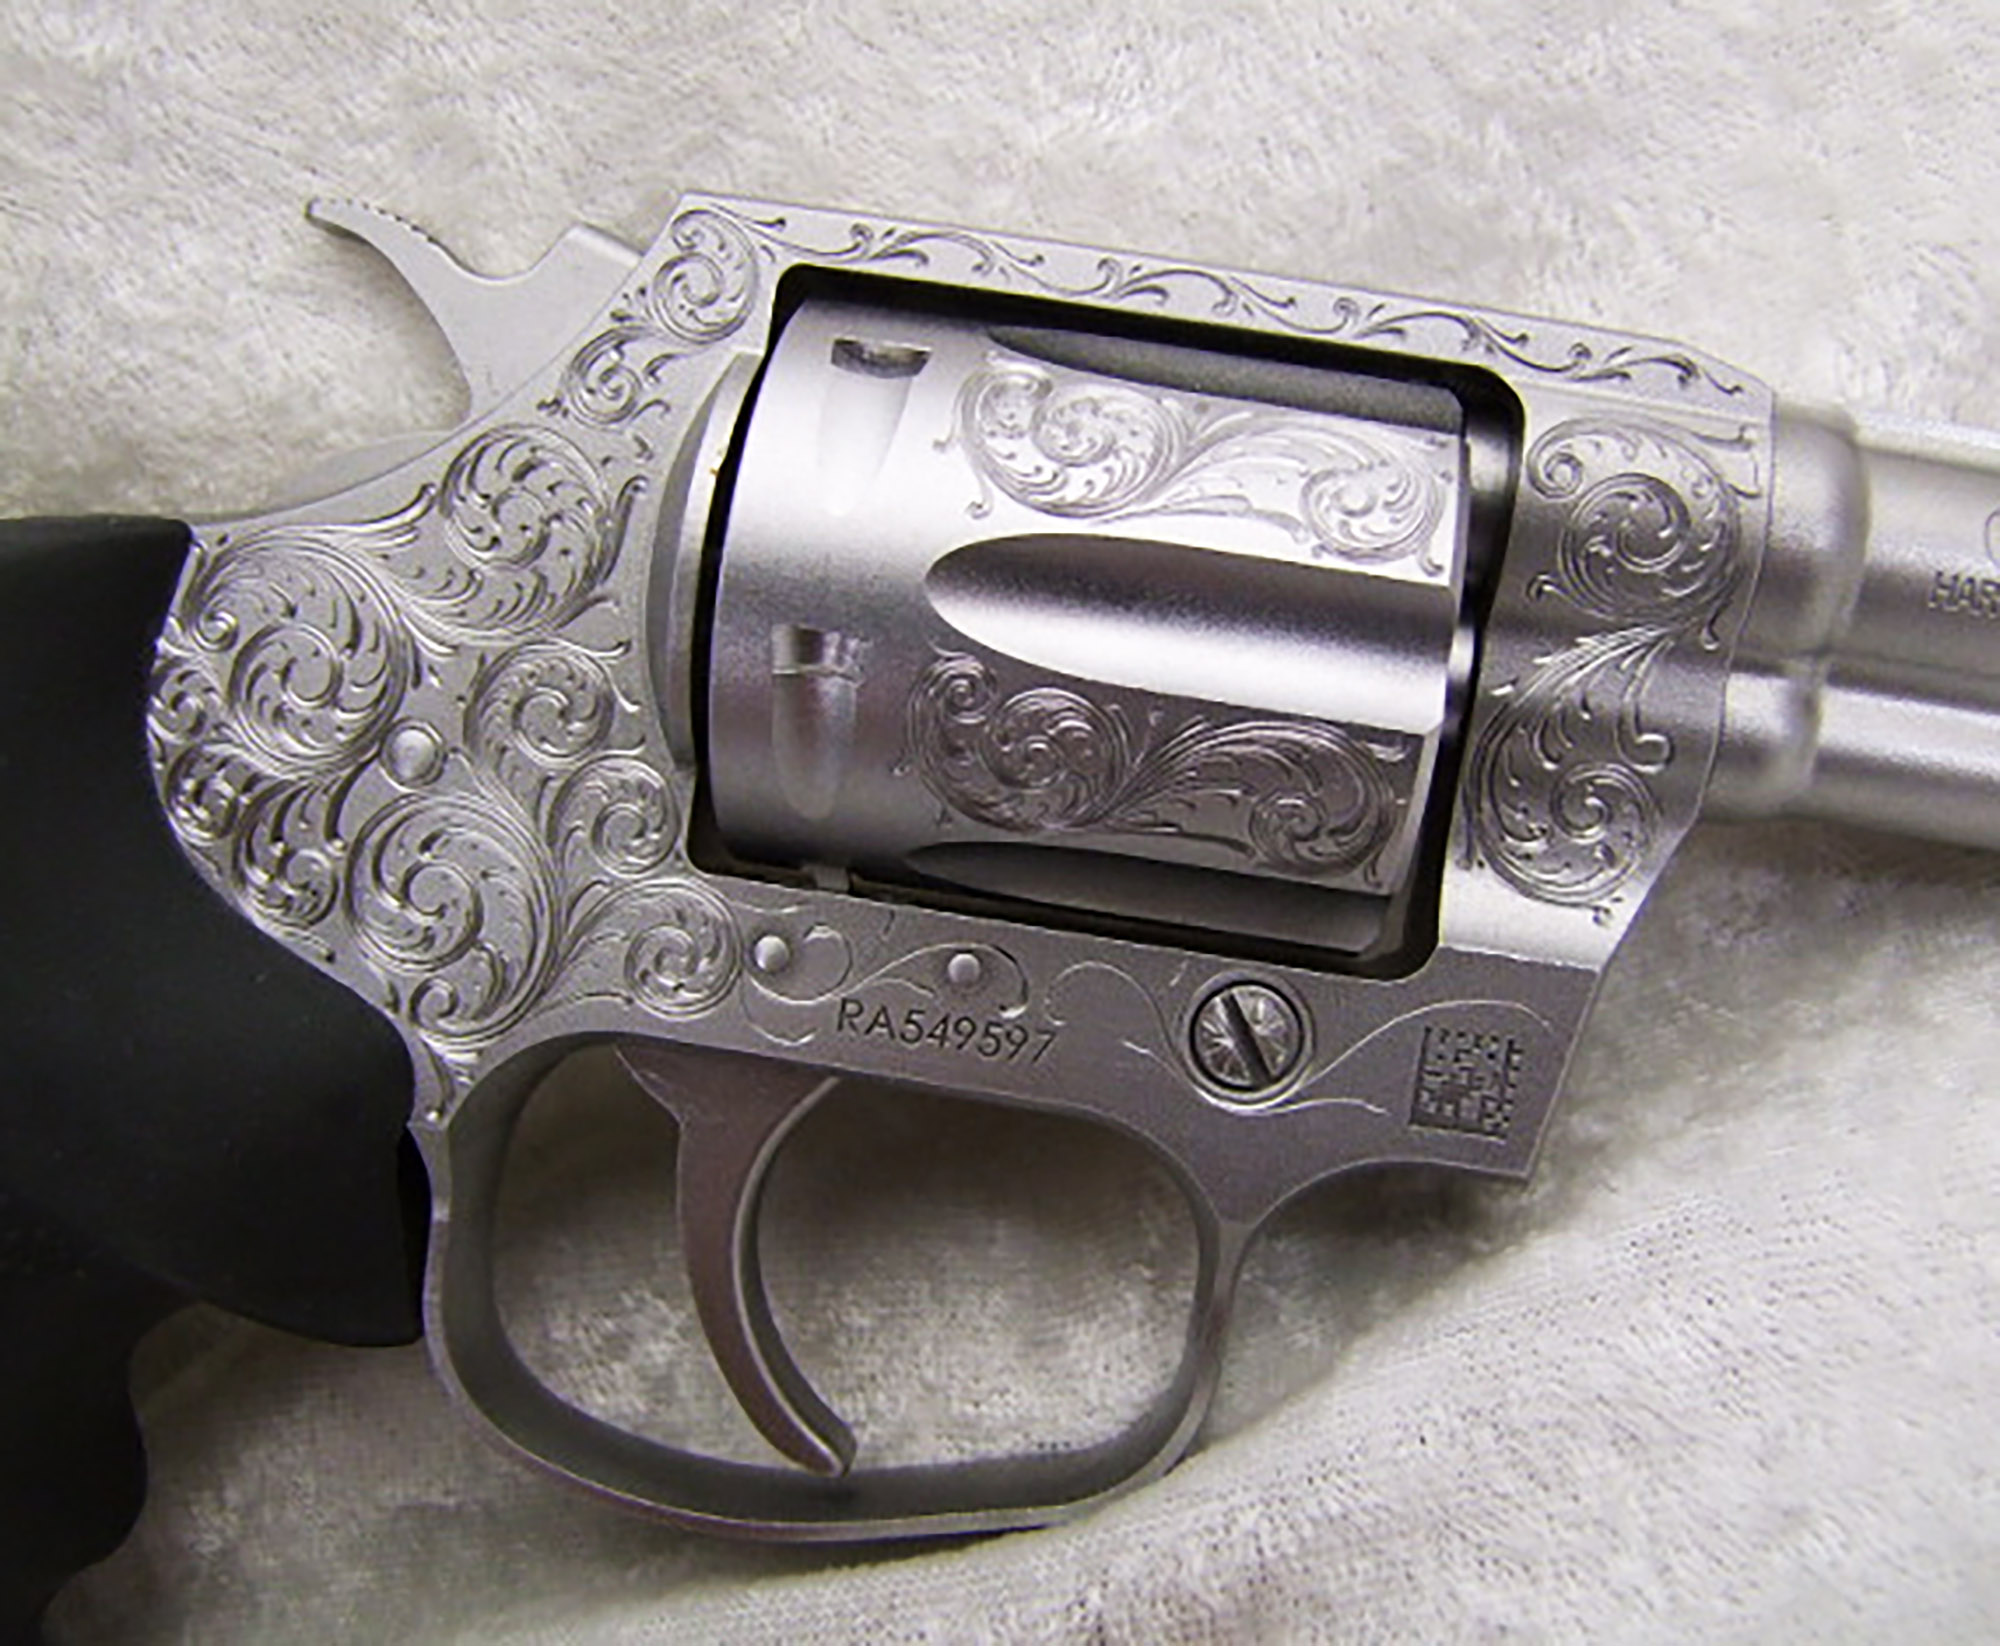 There are a few of these. Hand engraved by a Master